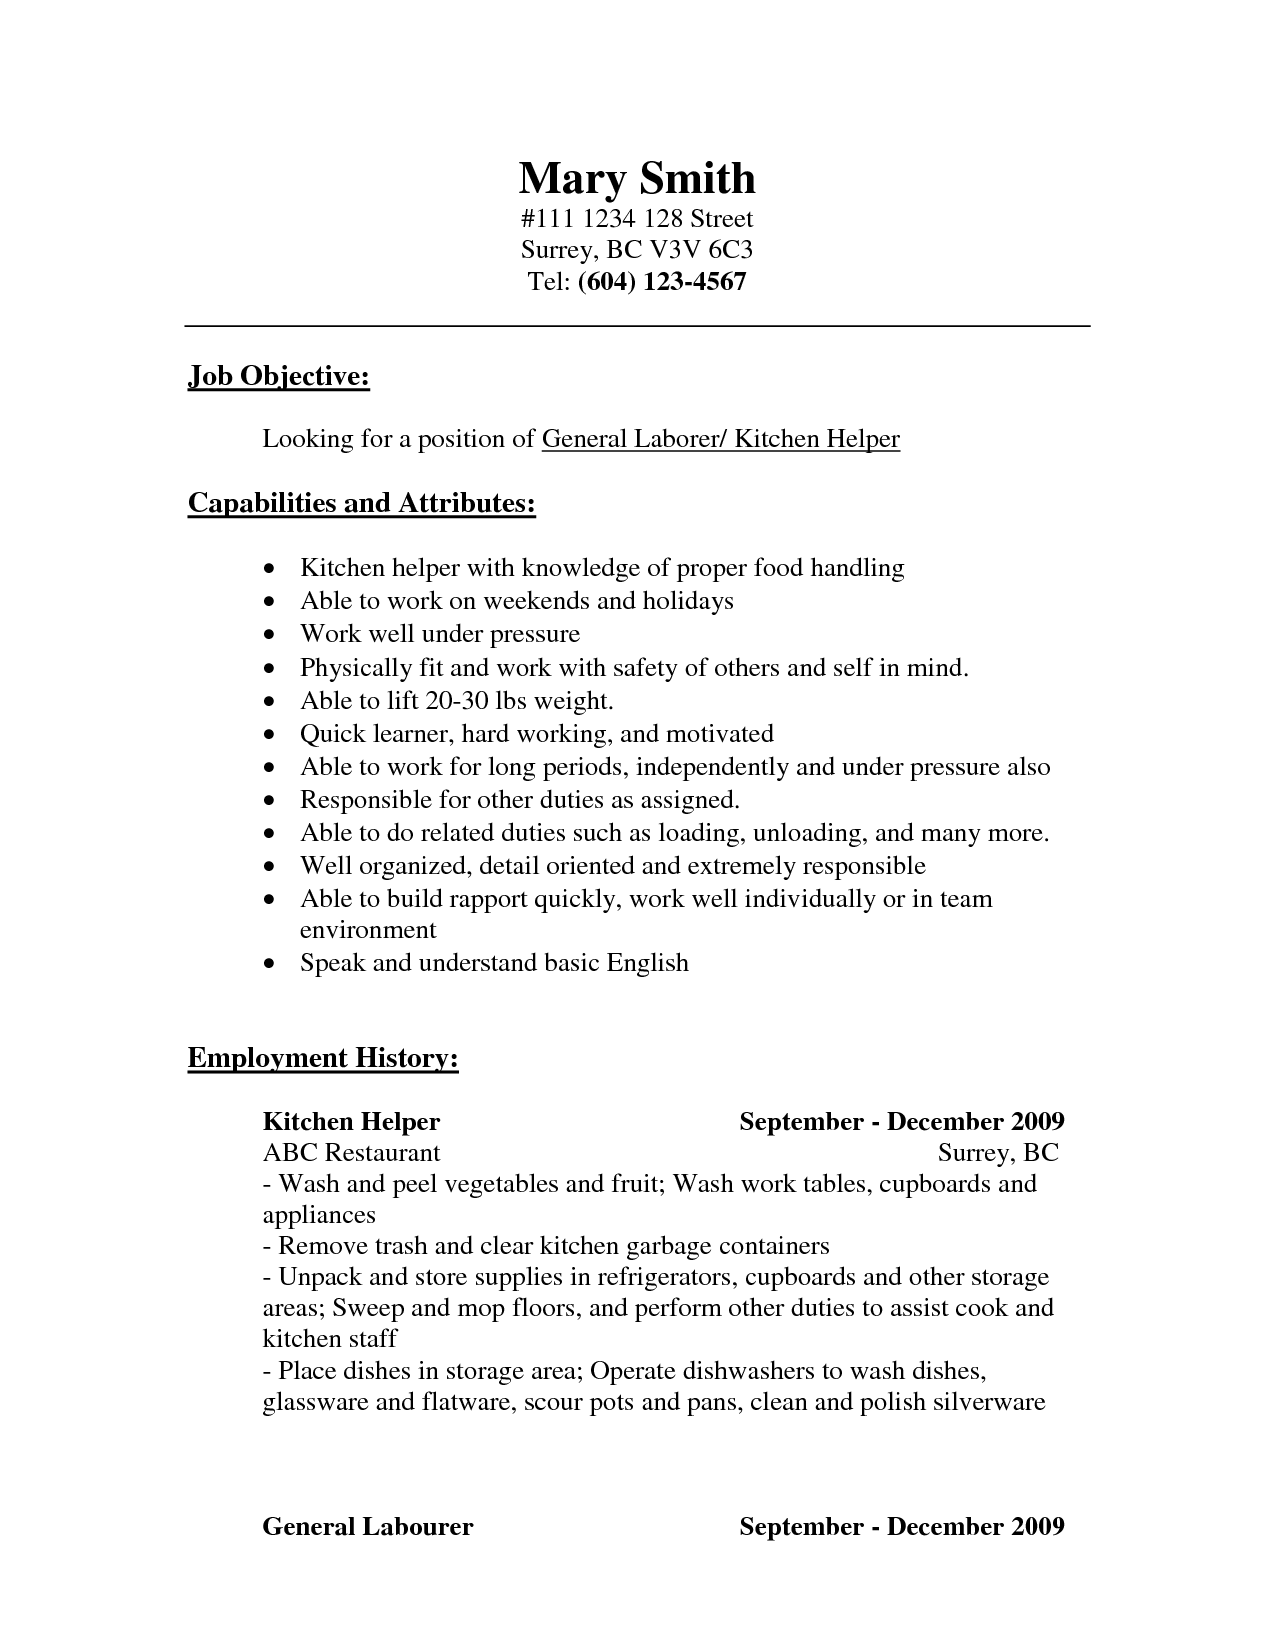 Sample Resume For Cook Position Amazing Resume Examples Kitchen Helper  Pinterest  Resume Helper Letter .